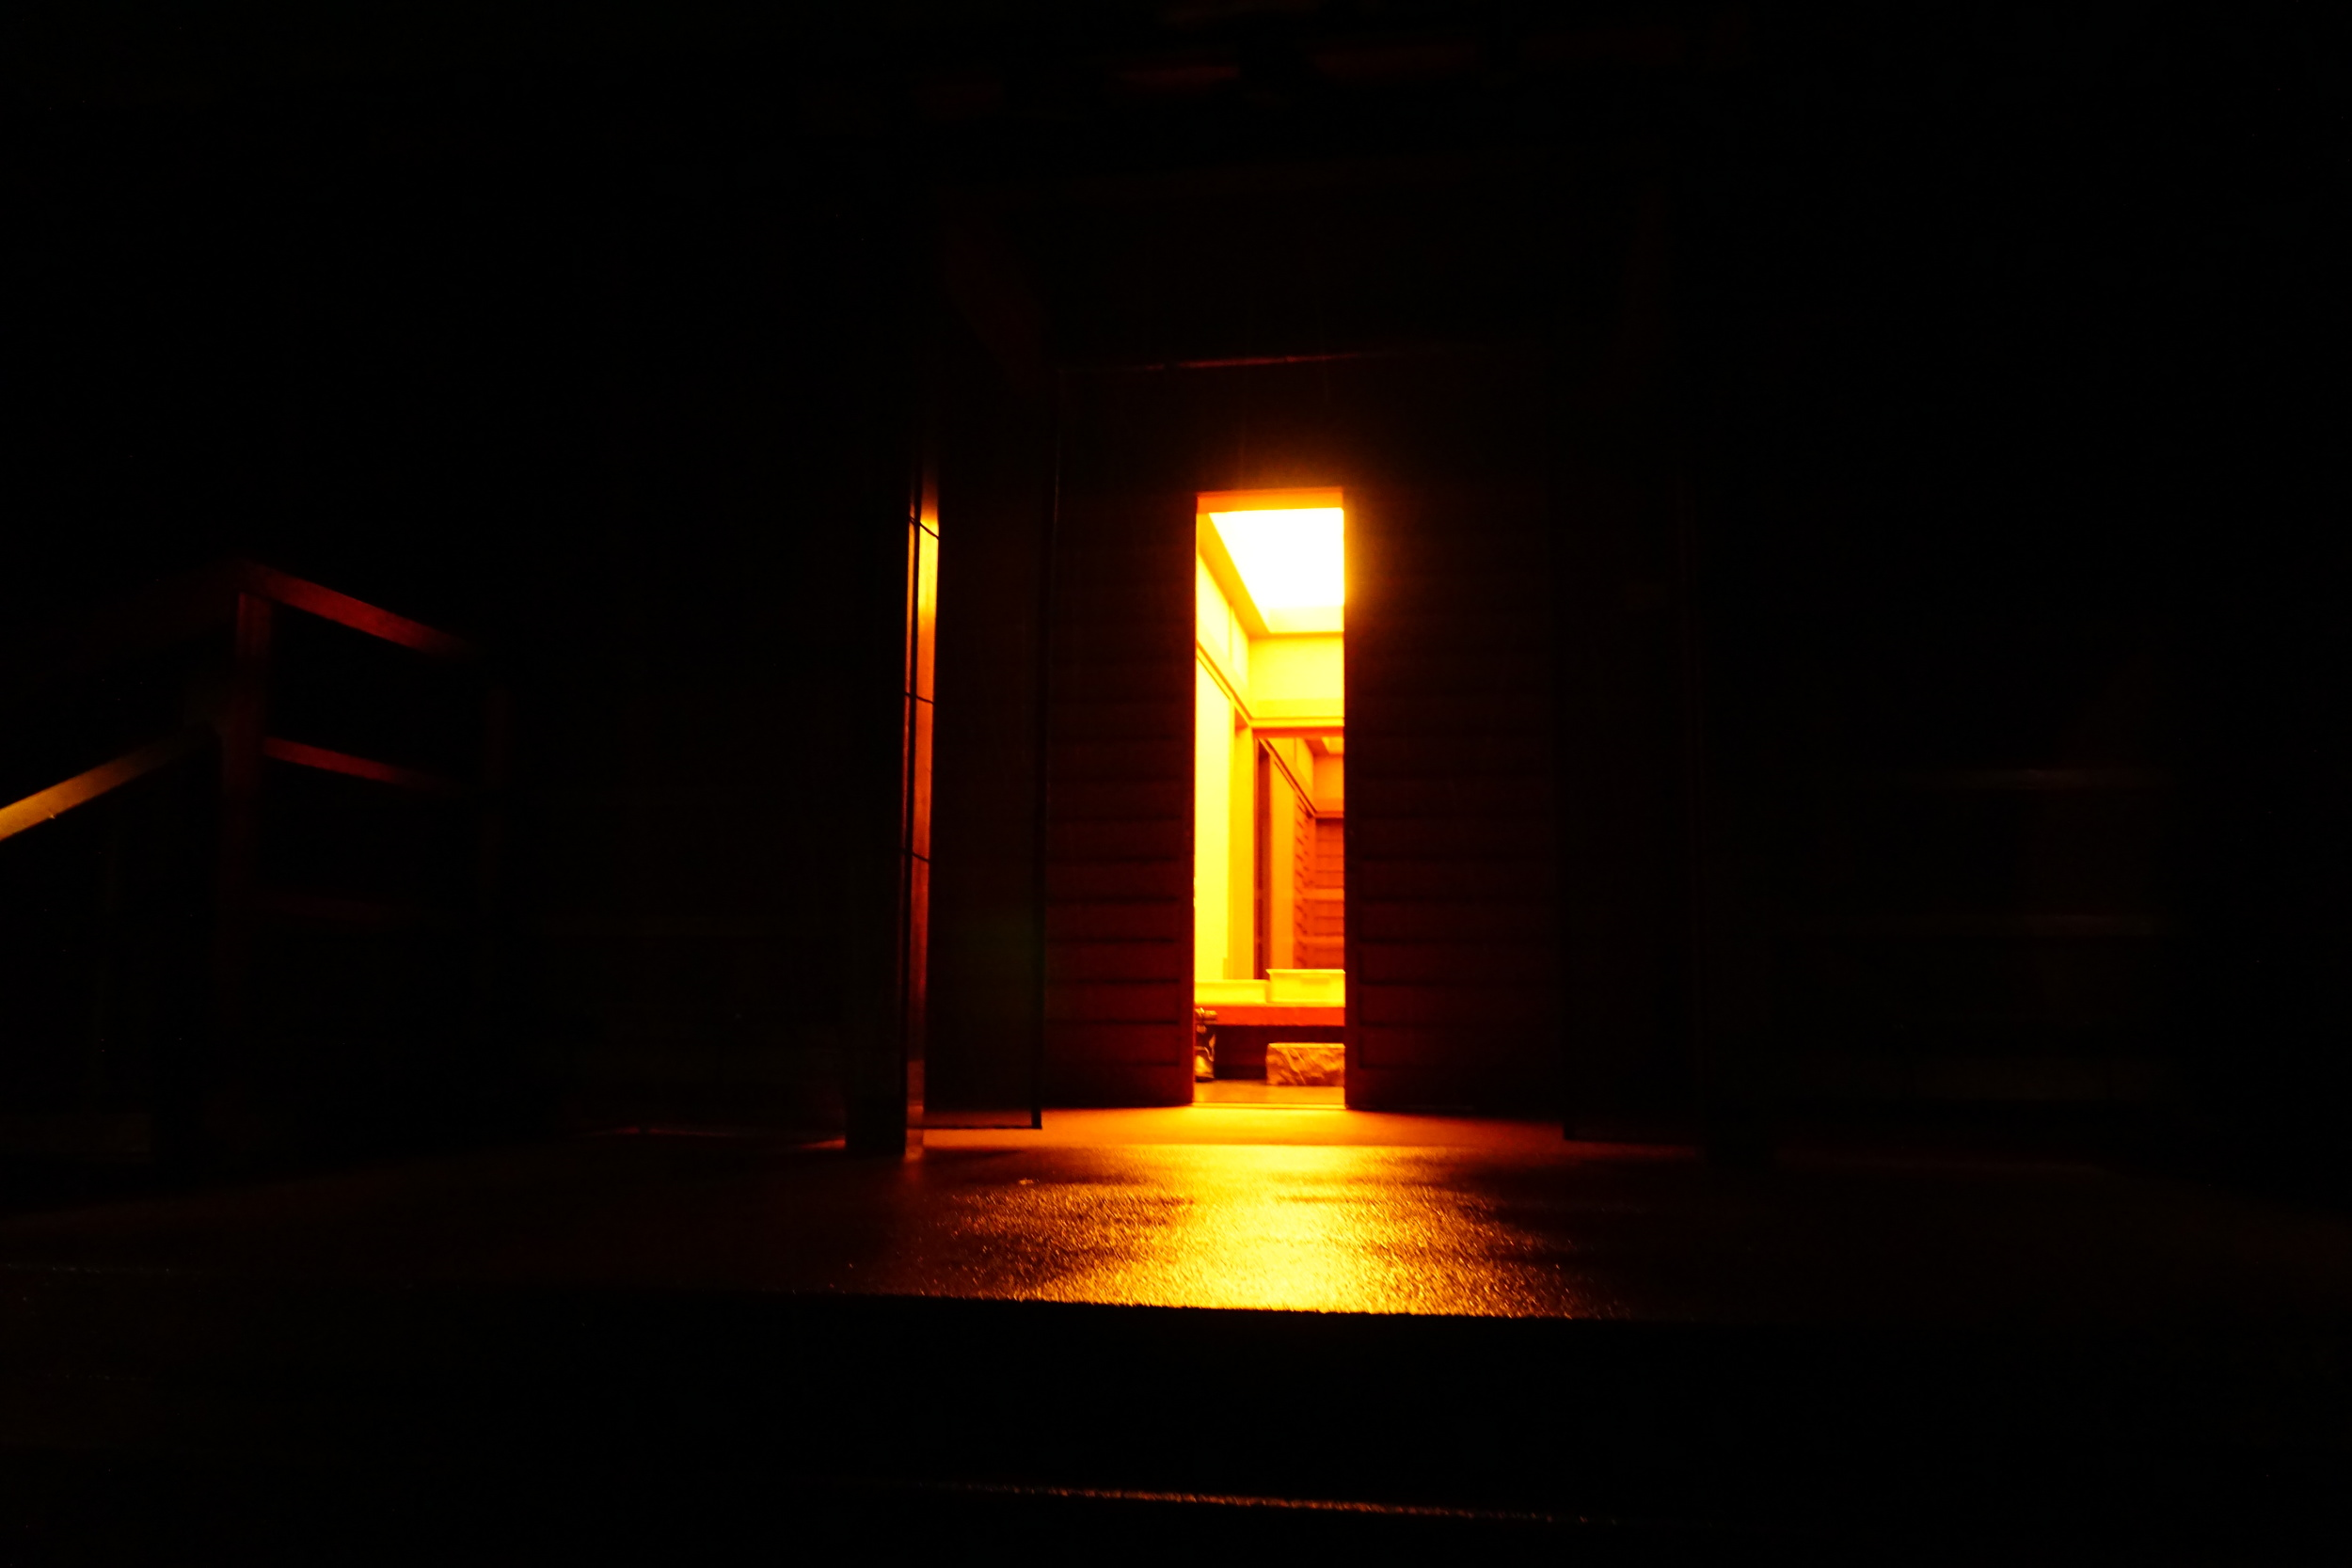 Front door at night. James Turrell, House of Light.